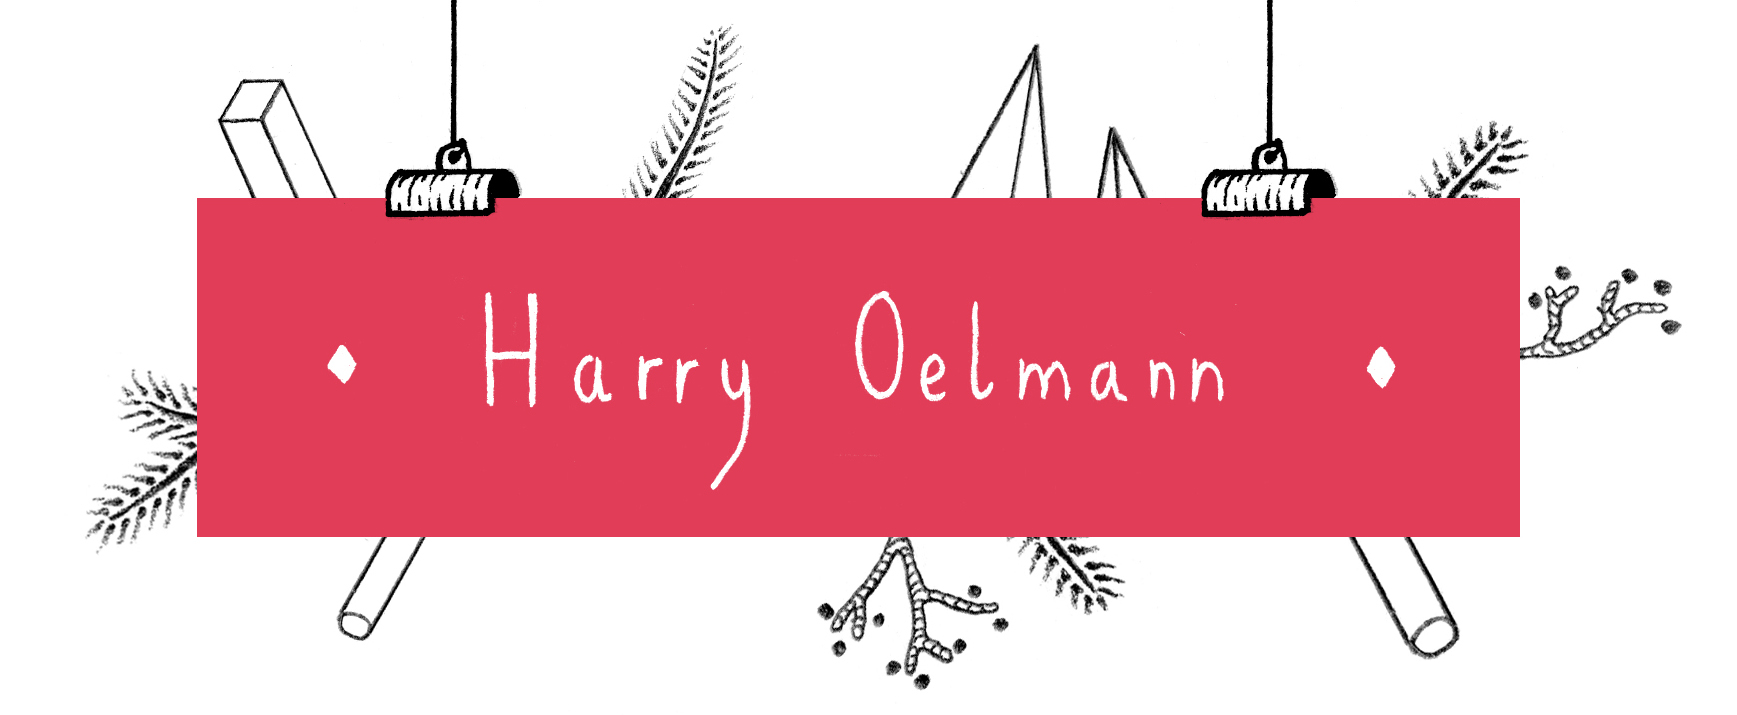 harry oelmann Signature